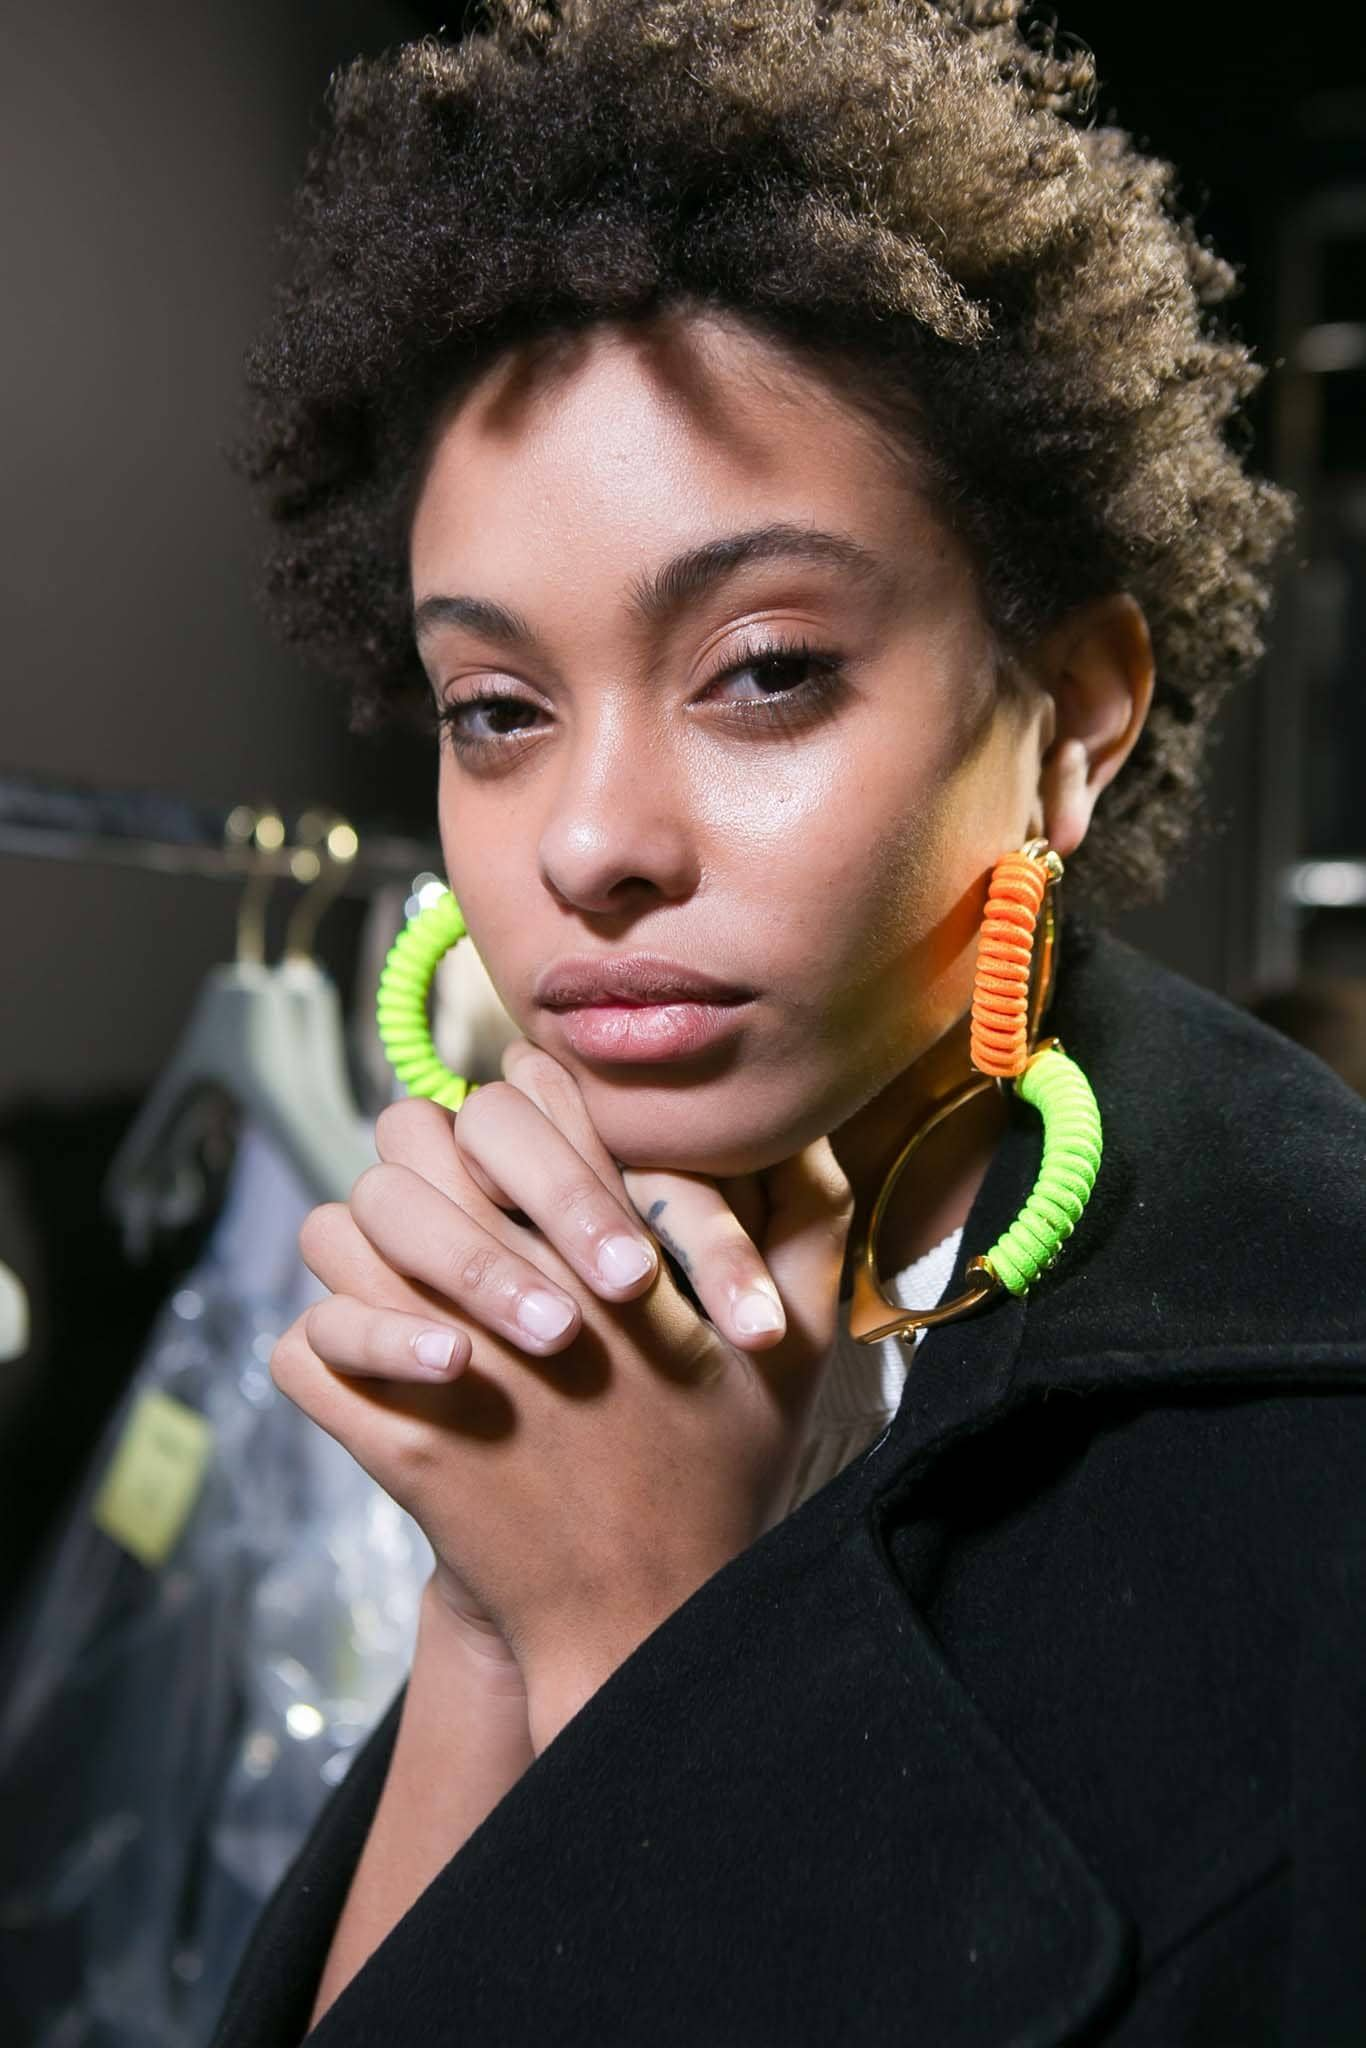 backstage shot of model with natural textured hair posing